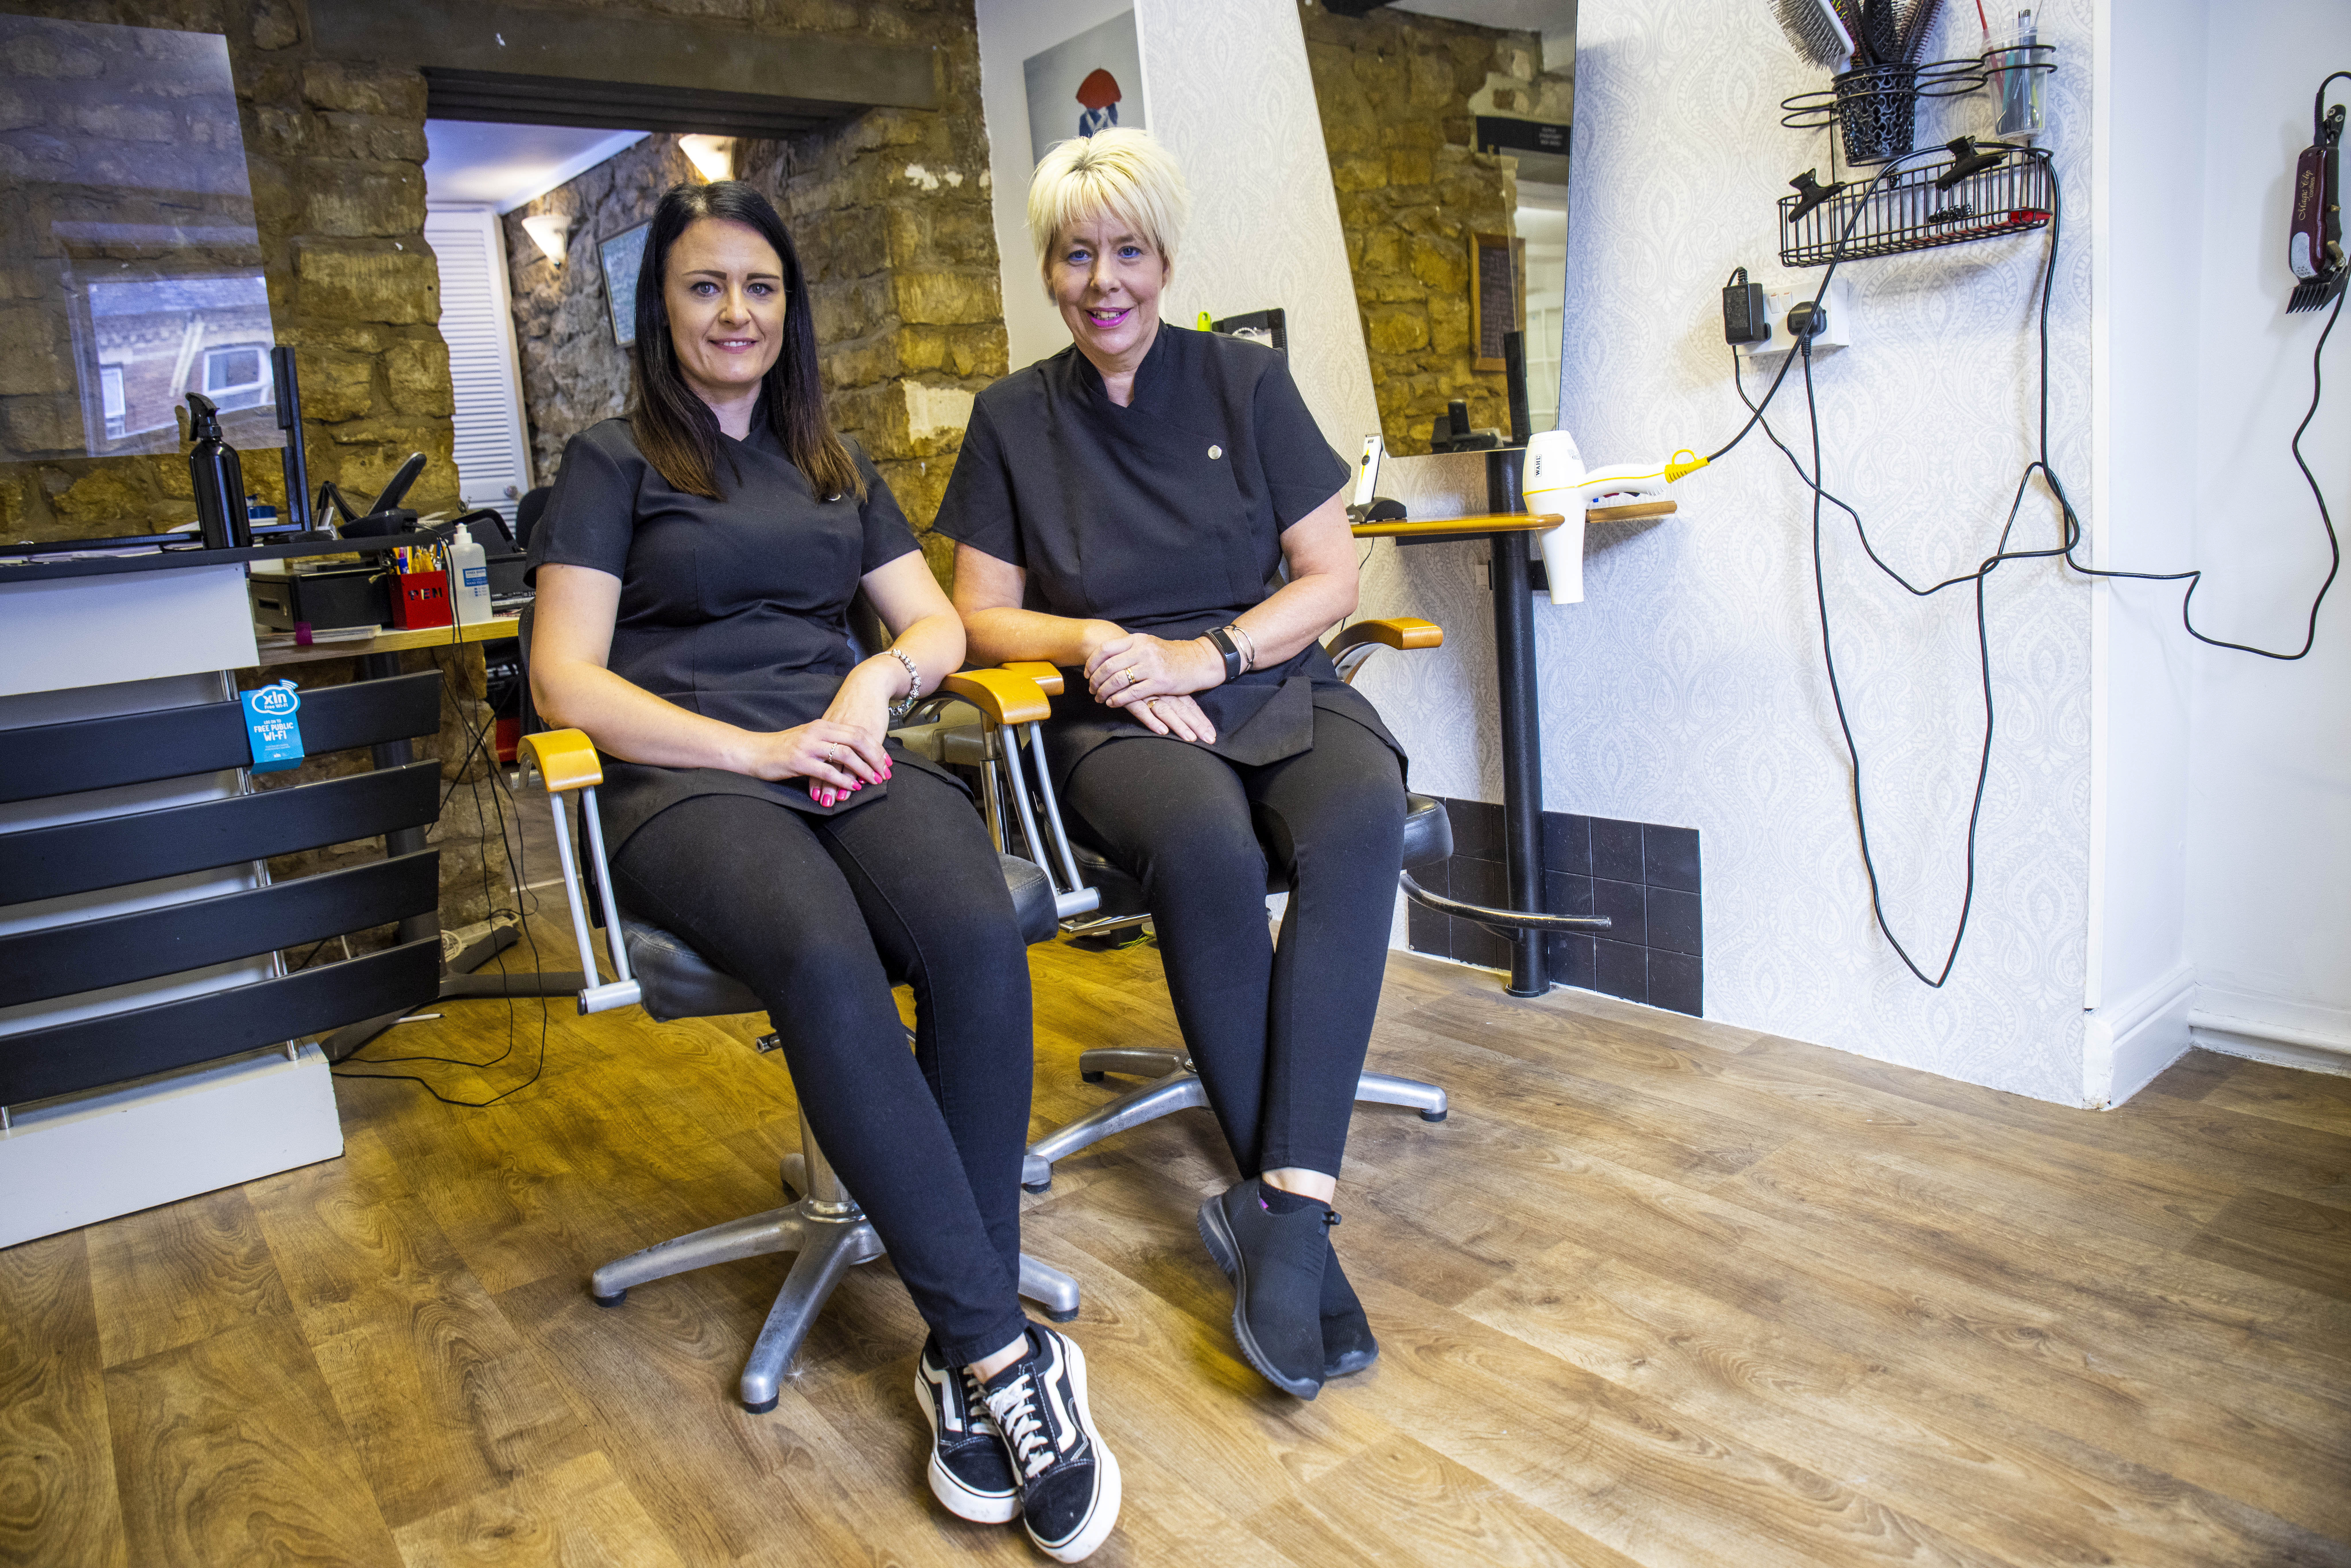 Alison Birch (R) owner of AJ's Unisex Salon alongside Claire Young, the manager